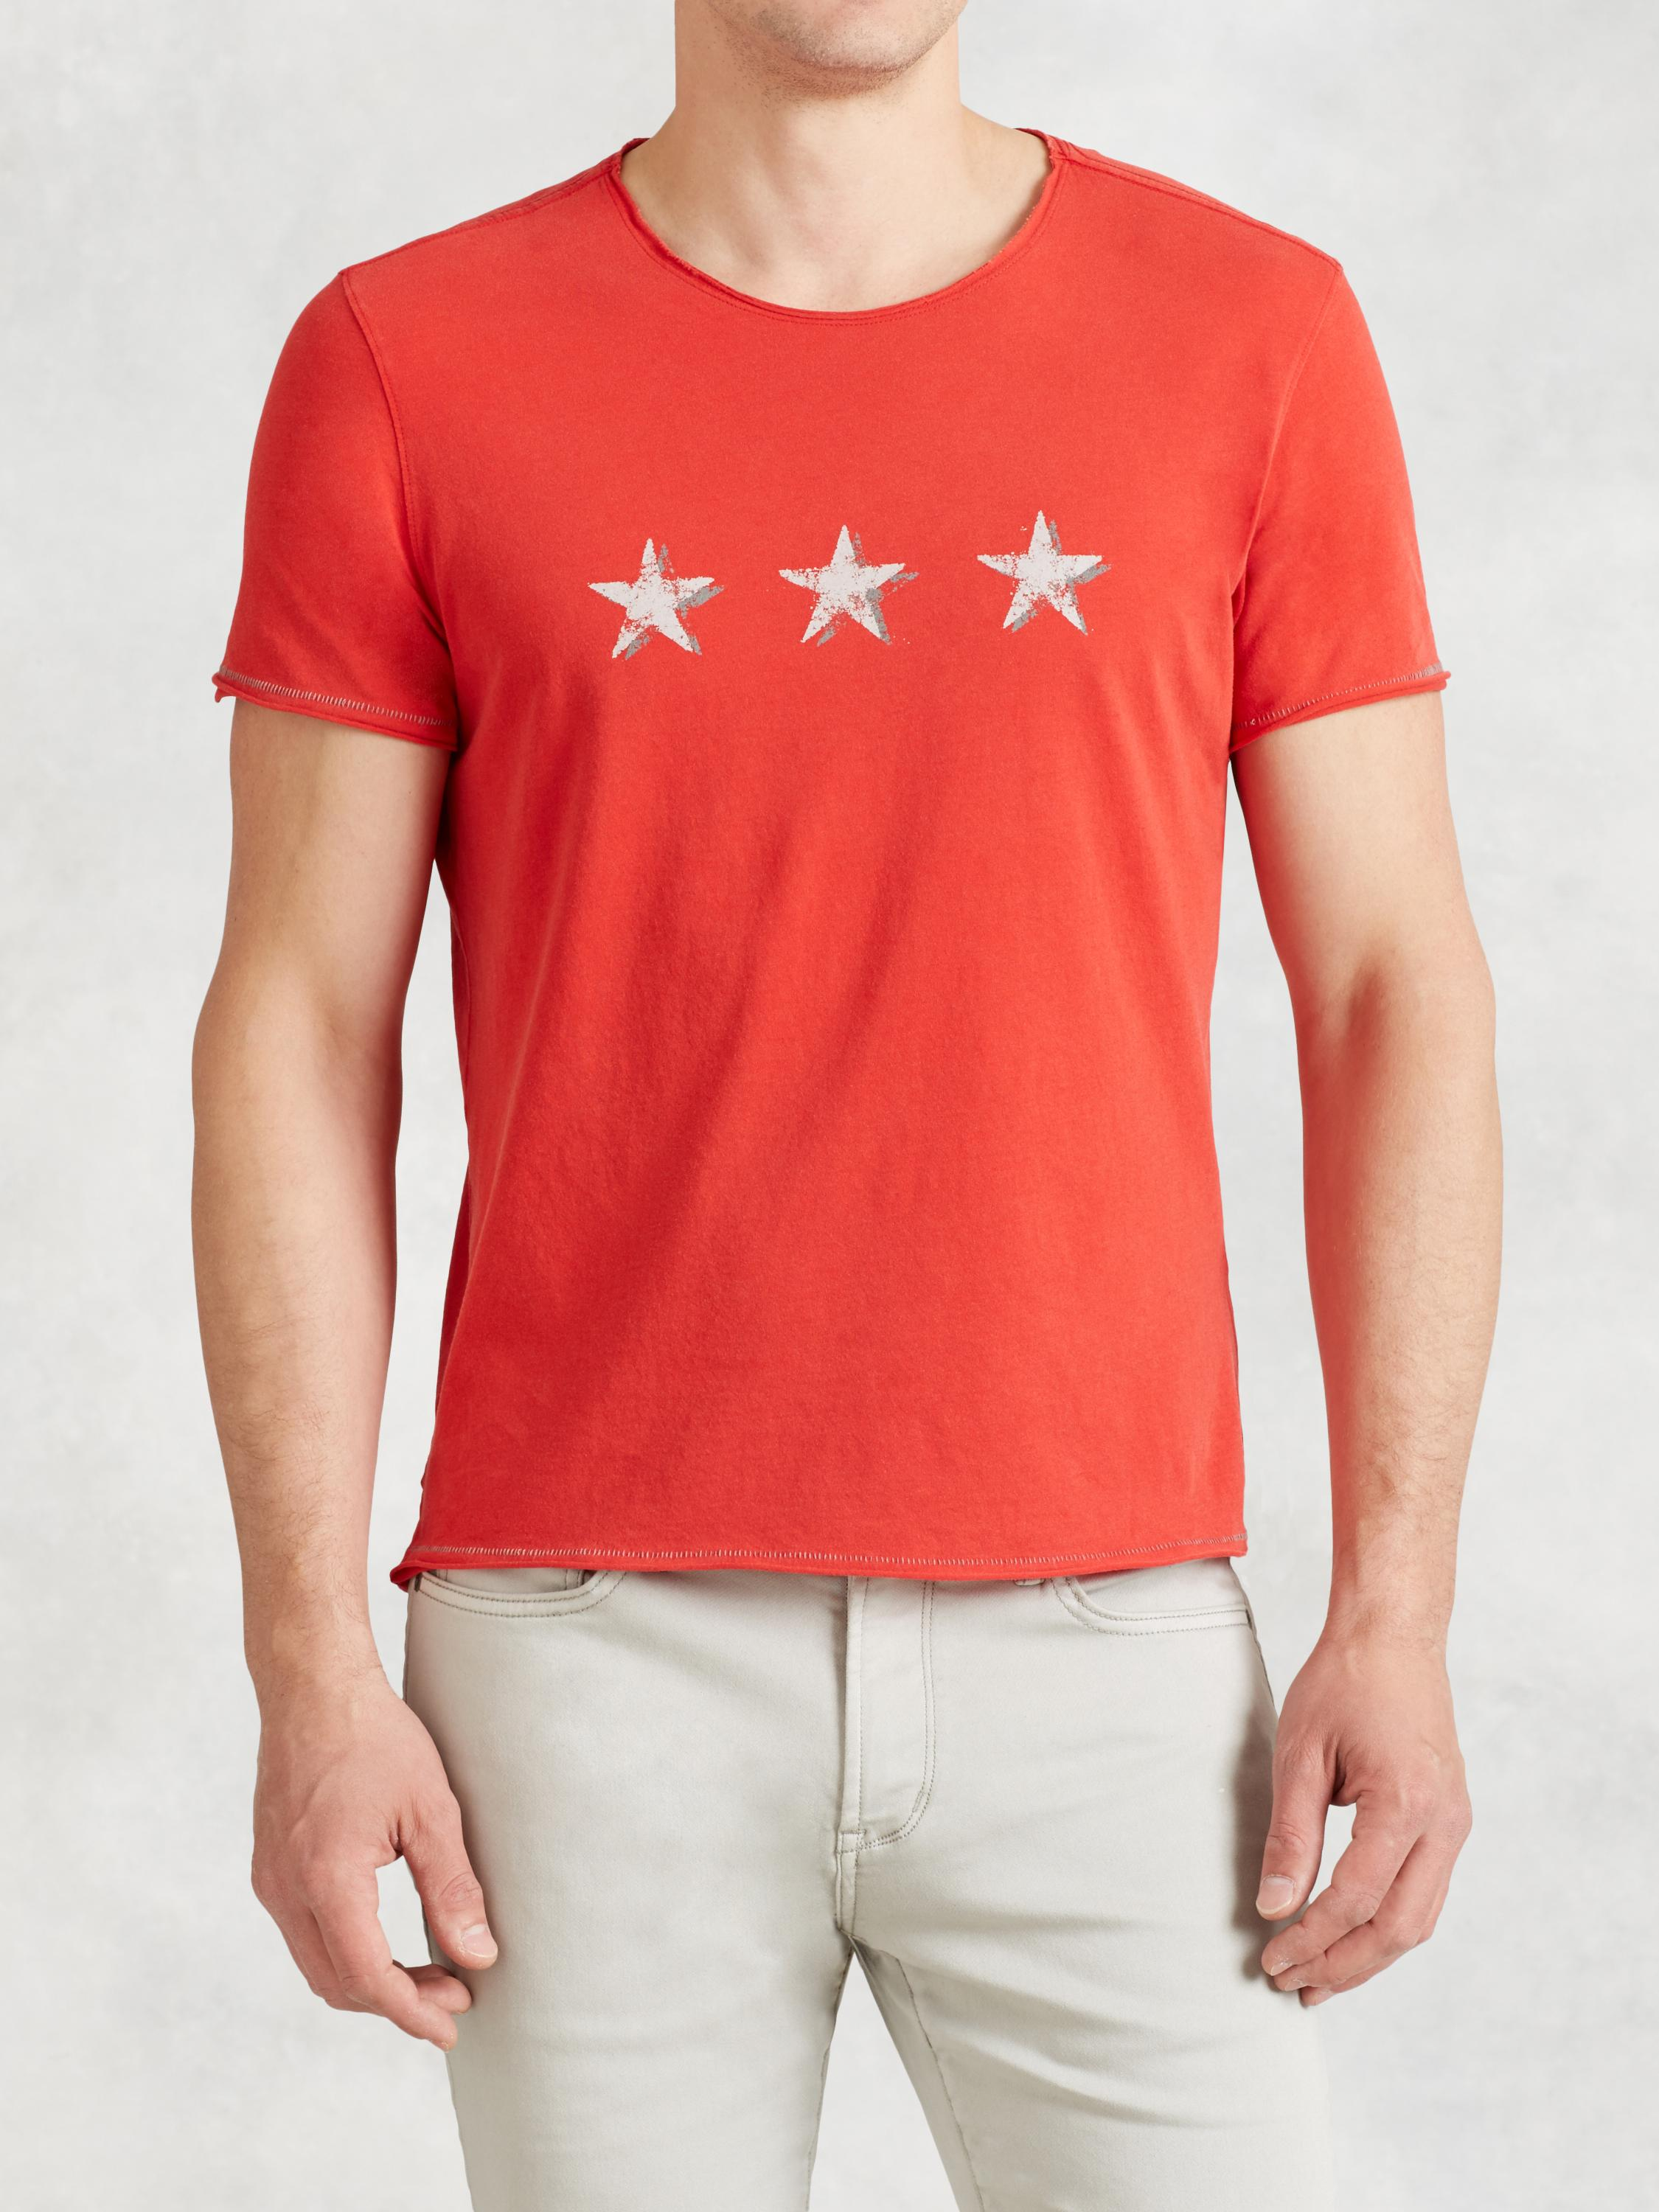 Tri Star Graphic Tee